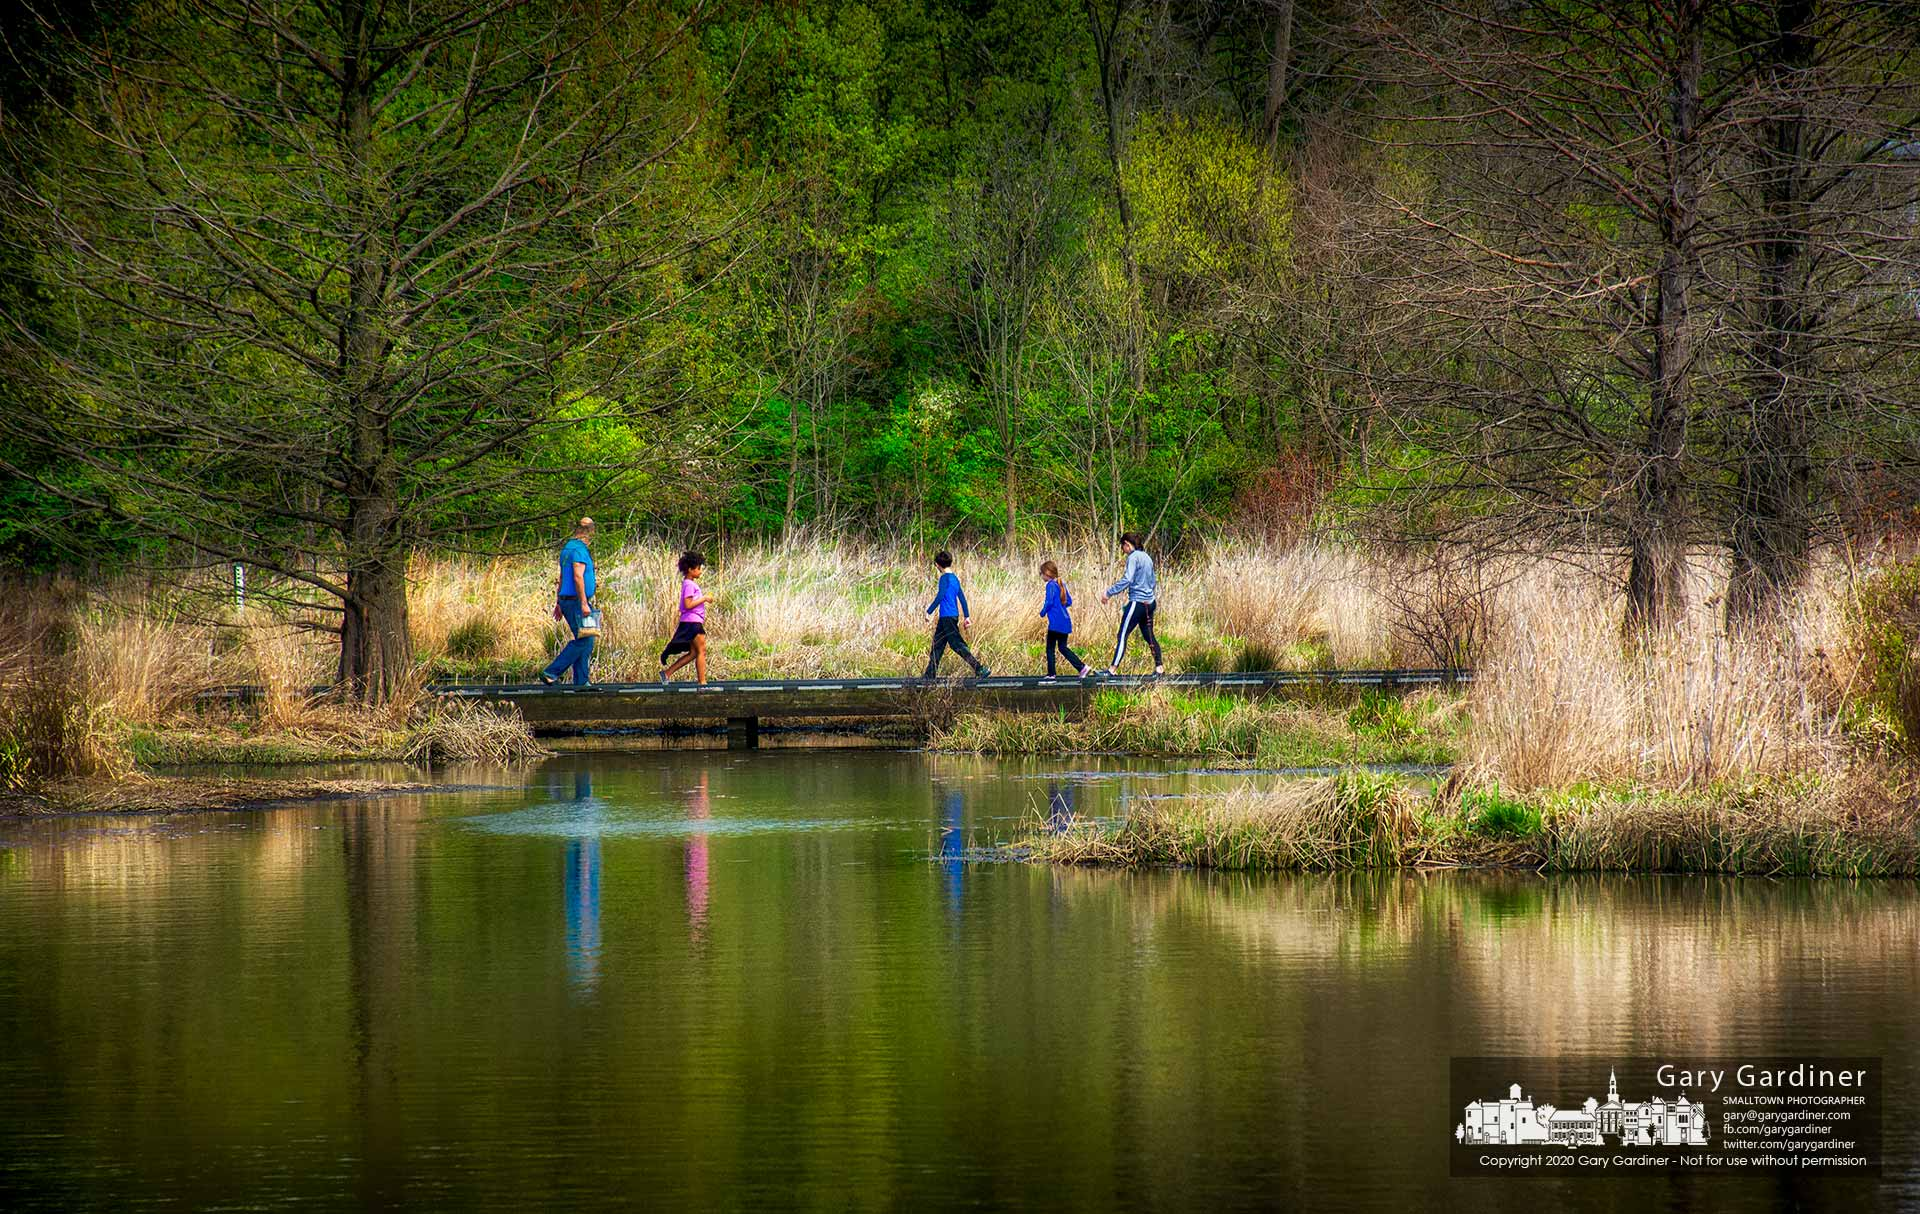 Families cross the bridge spanning the Highlands wetlands on a warm Saturday morning. My Final Photo for April 25, 2020.